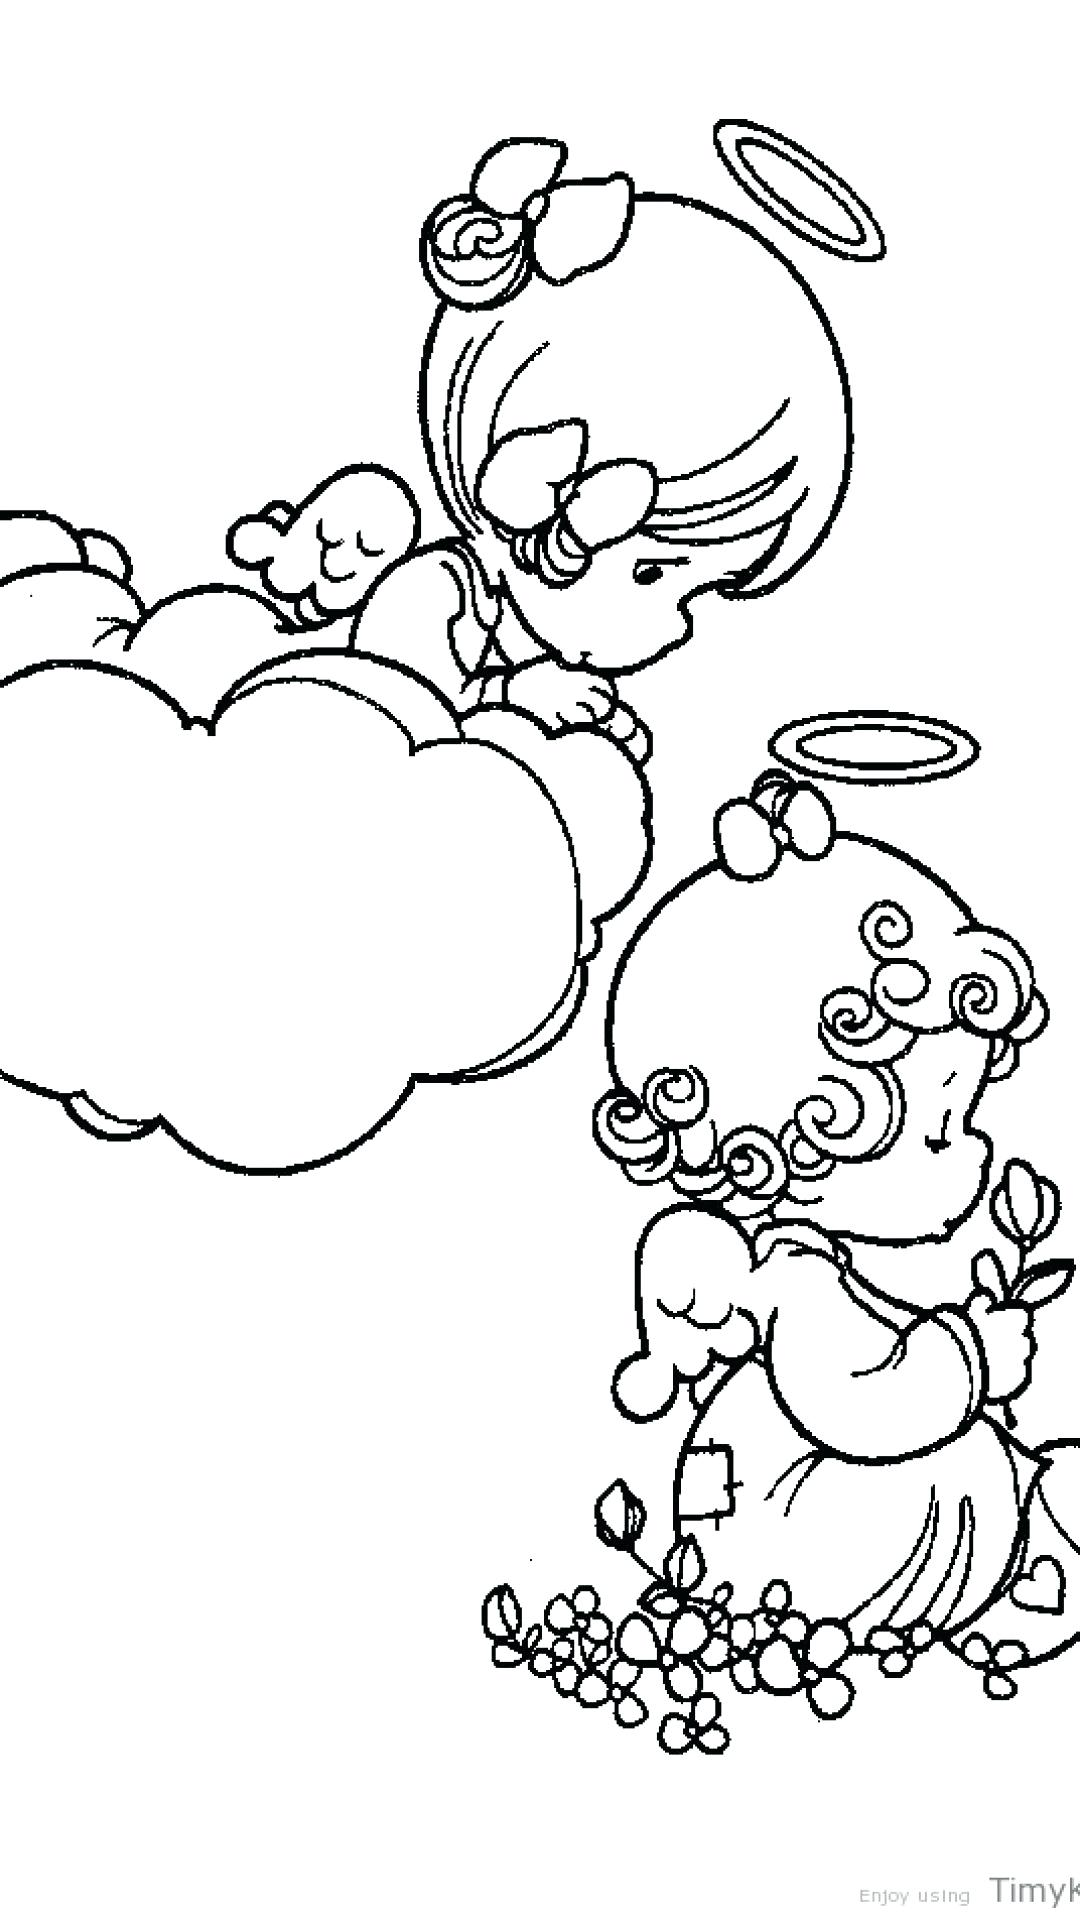 1080x1920 Coloring Coloring Pages Precious Moments Boy Image Source Free